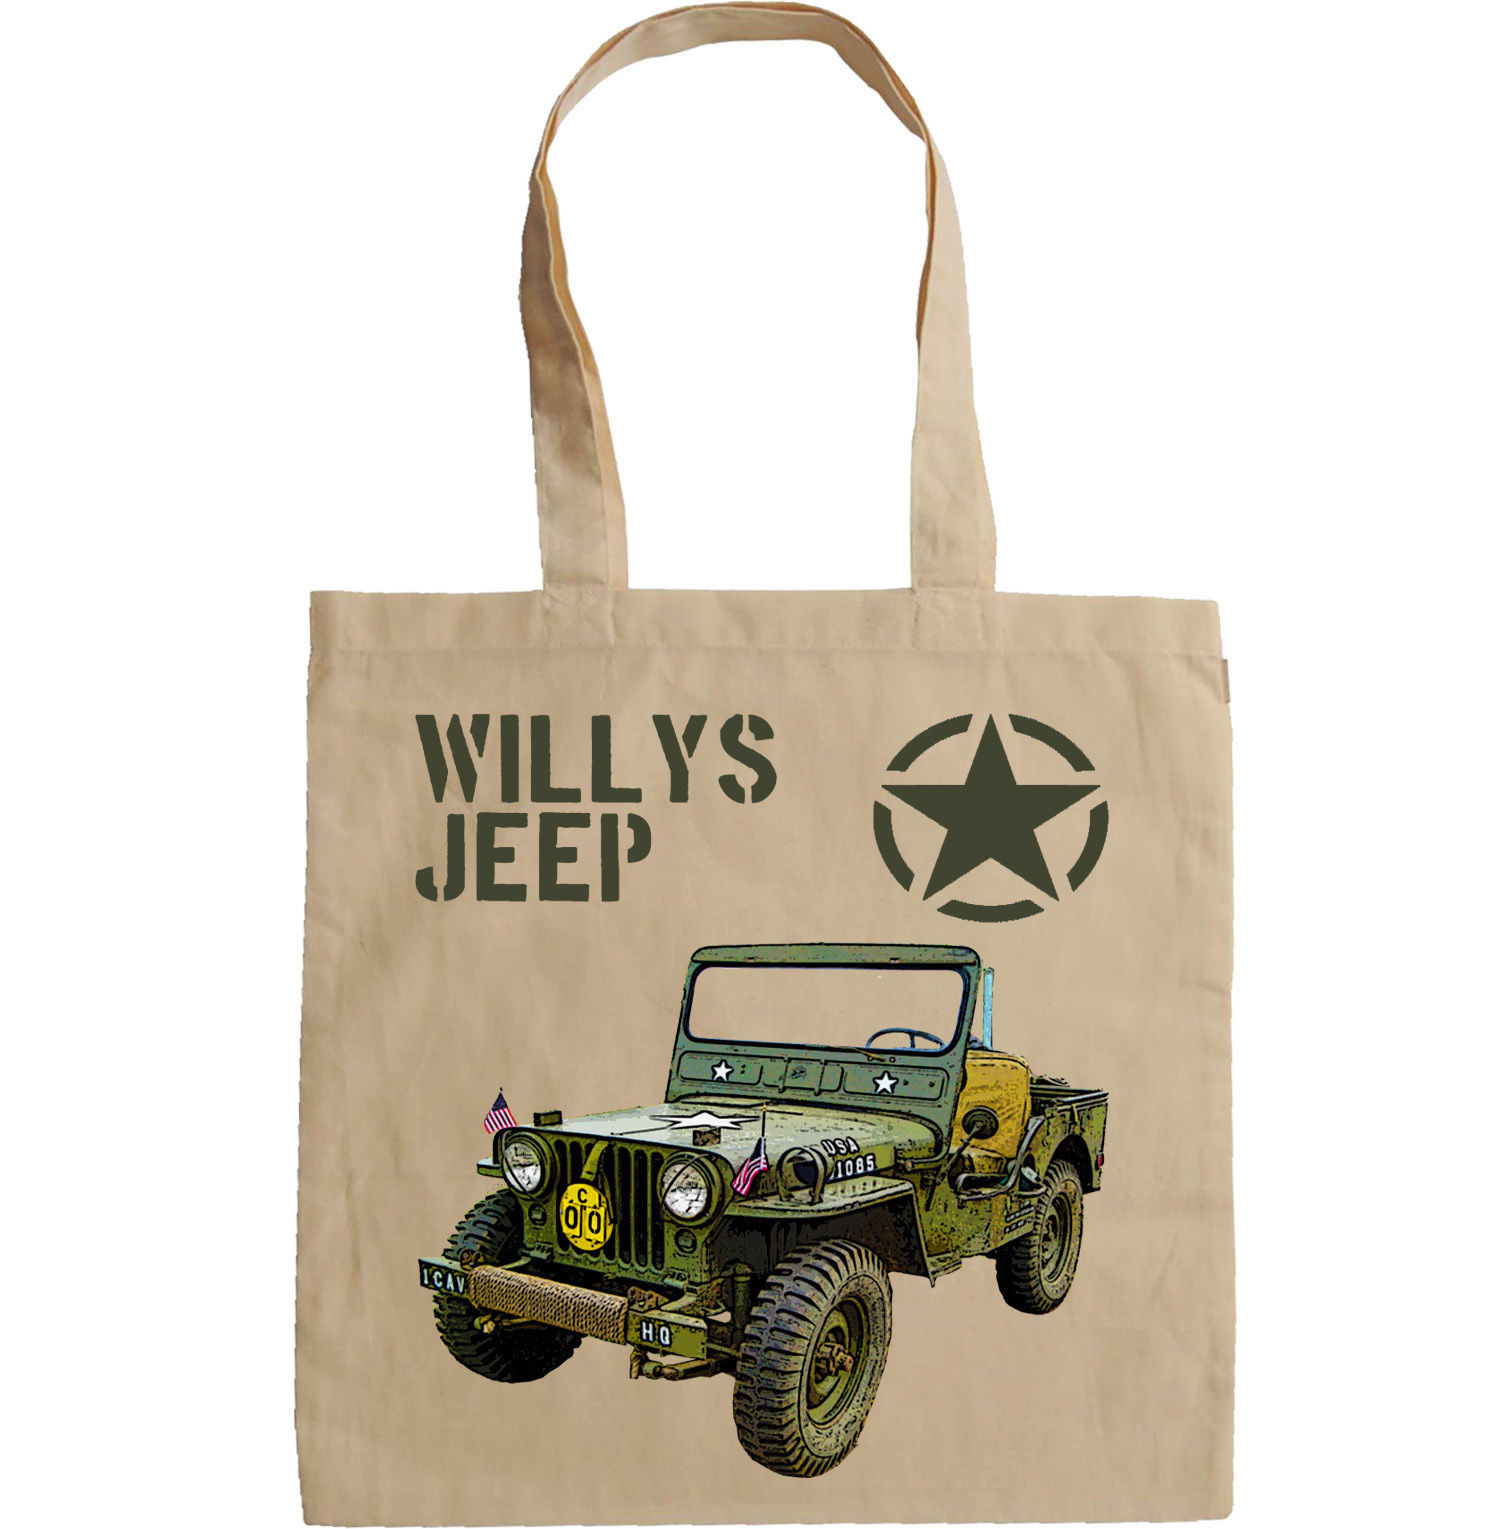 WILLYS JEEP USA WWII - NEW AMAZING GRAPHIC HAND BAG/TOTE BAG